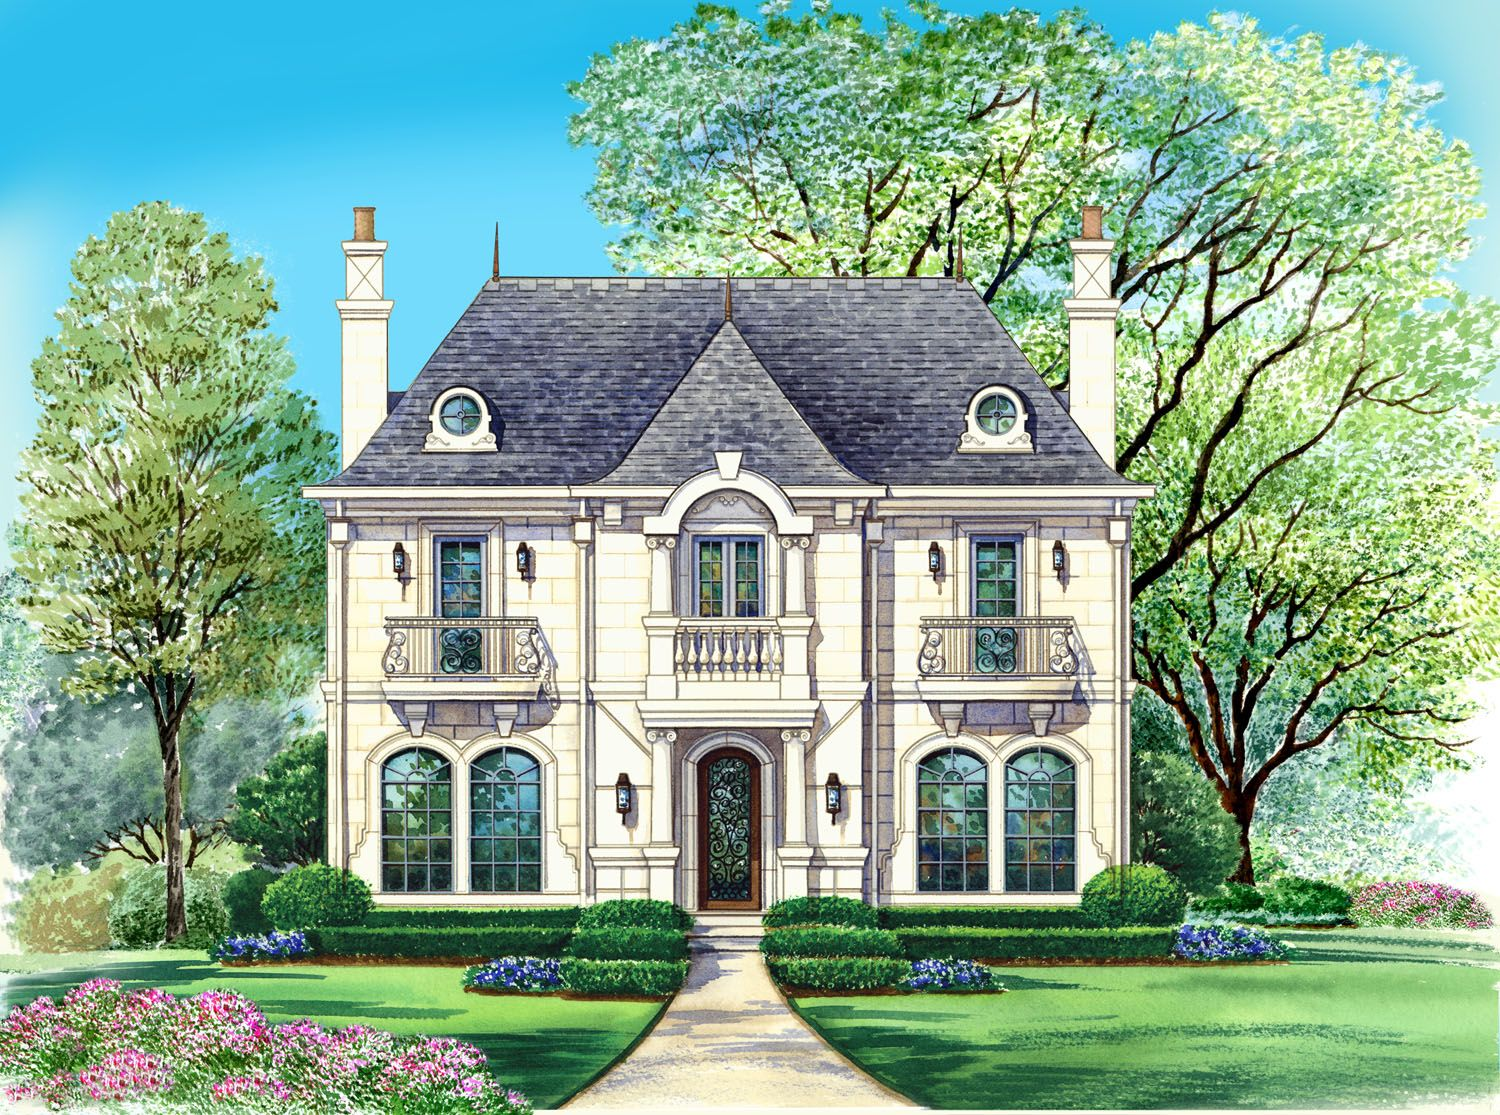 Chateau Home Style Laurette Chateau Timber Frame Home Plan French